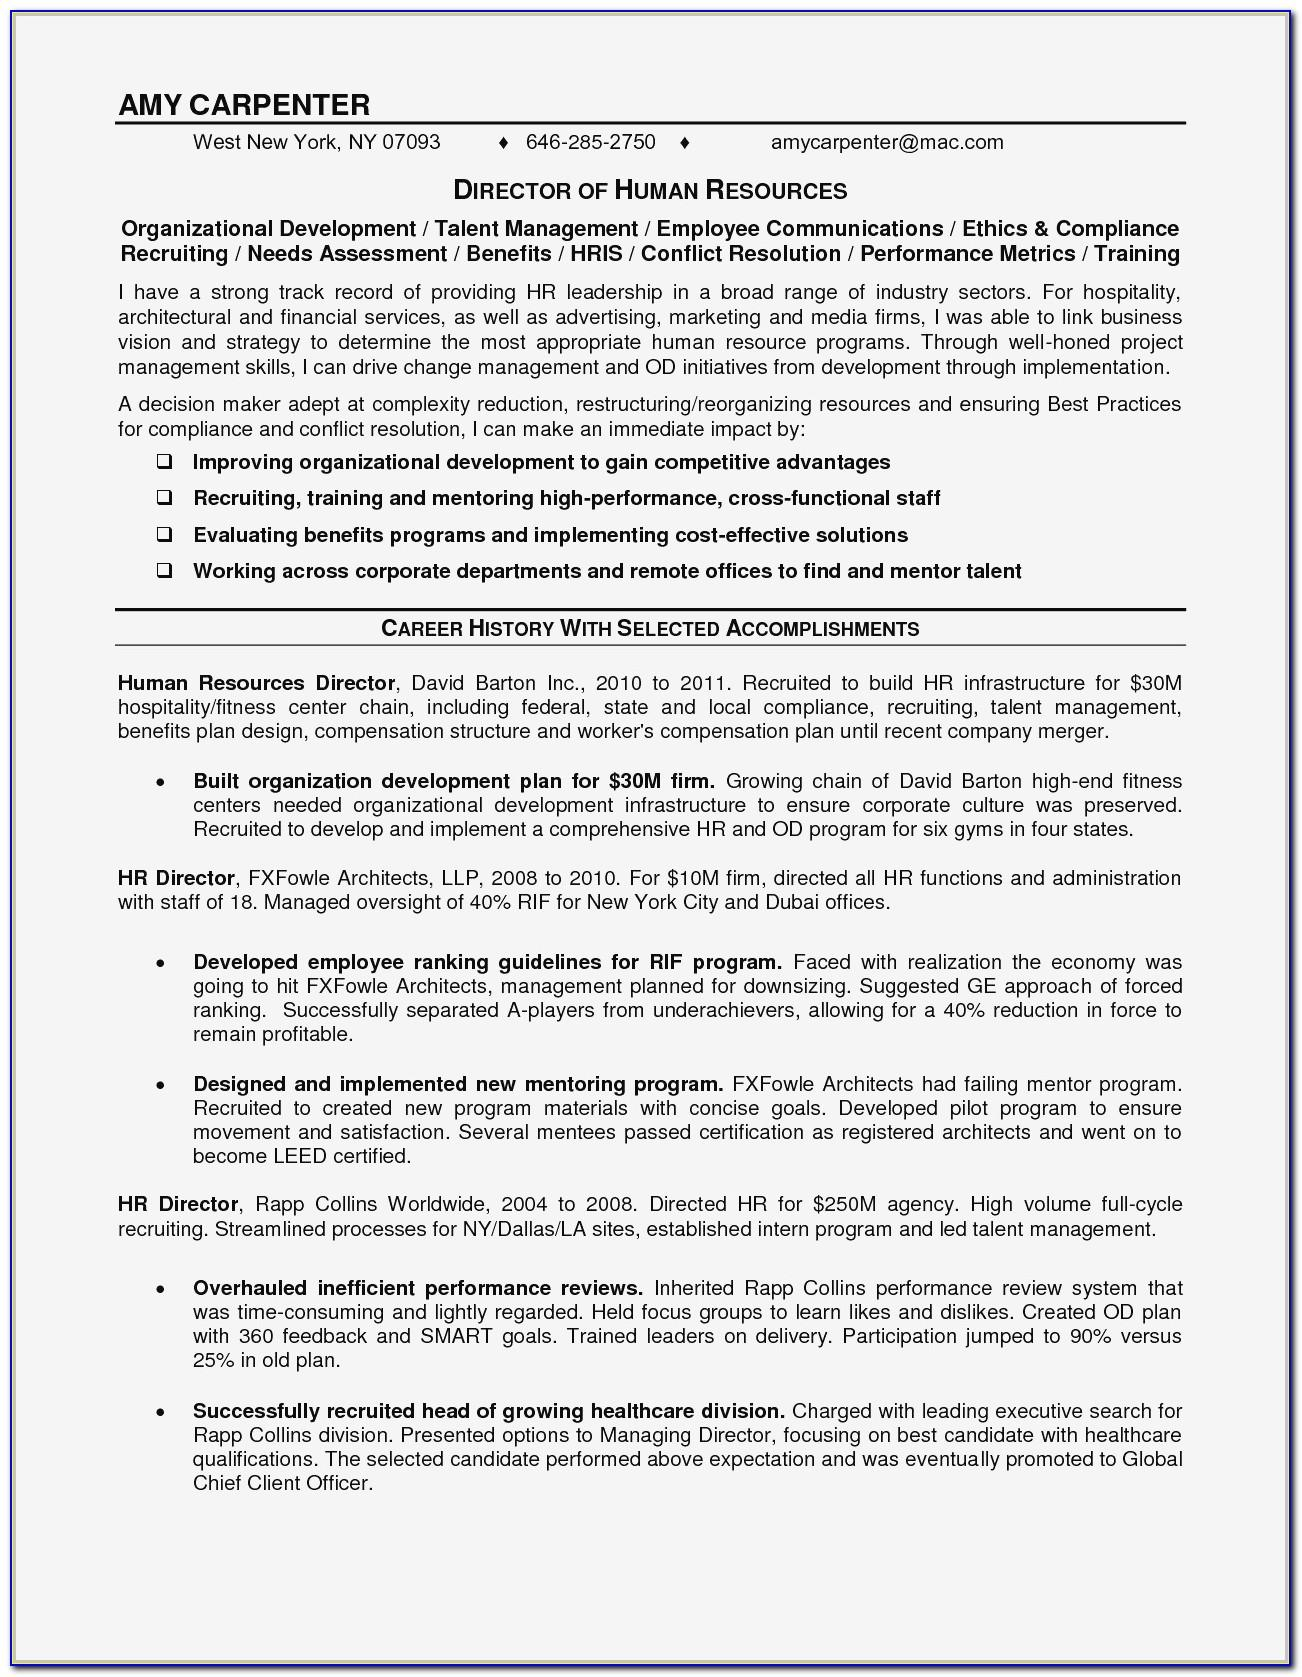 Promissory Note And Security Agreement Template